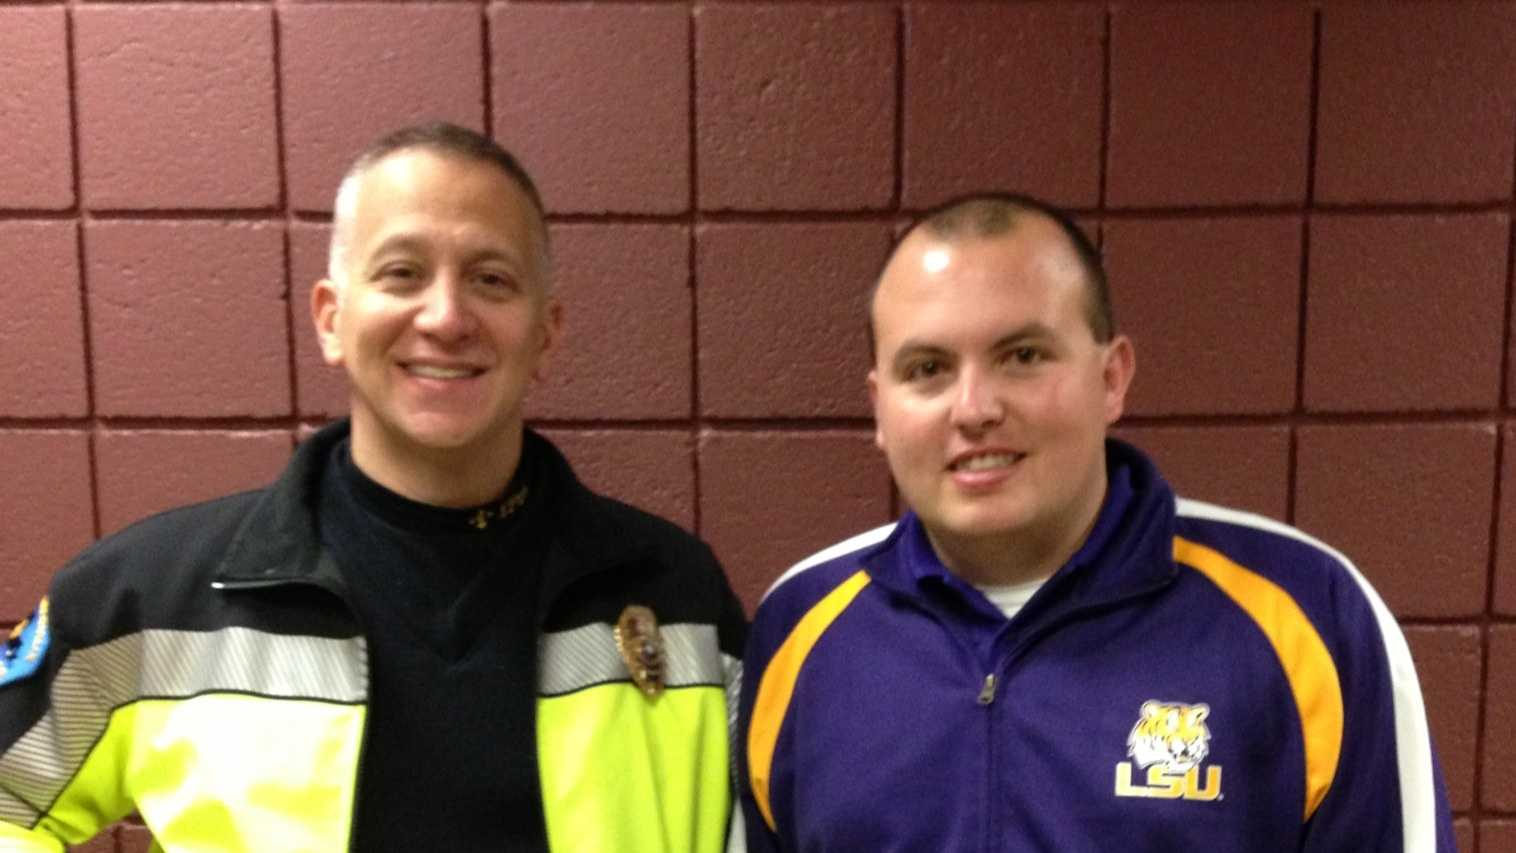 Chief Silverii and Justin Tabor